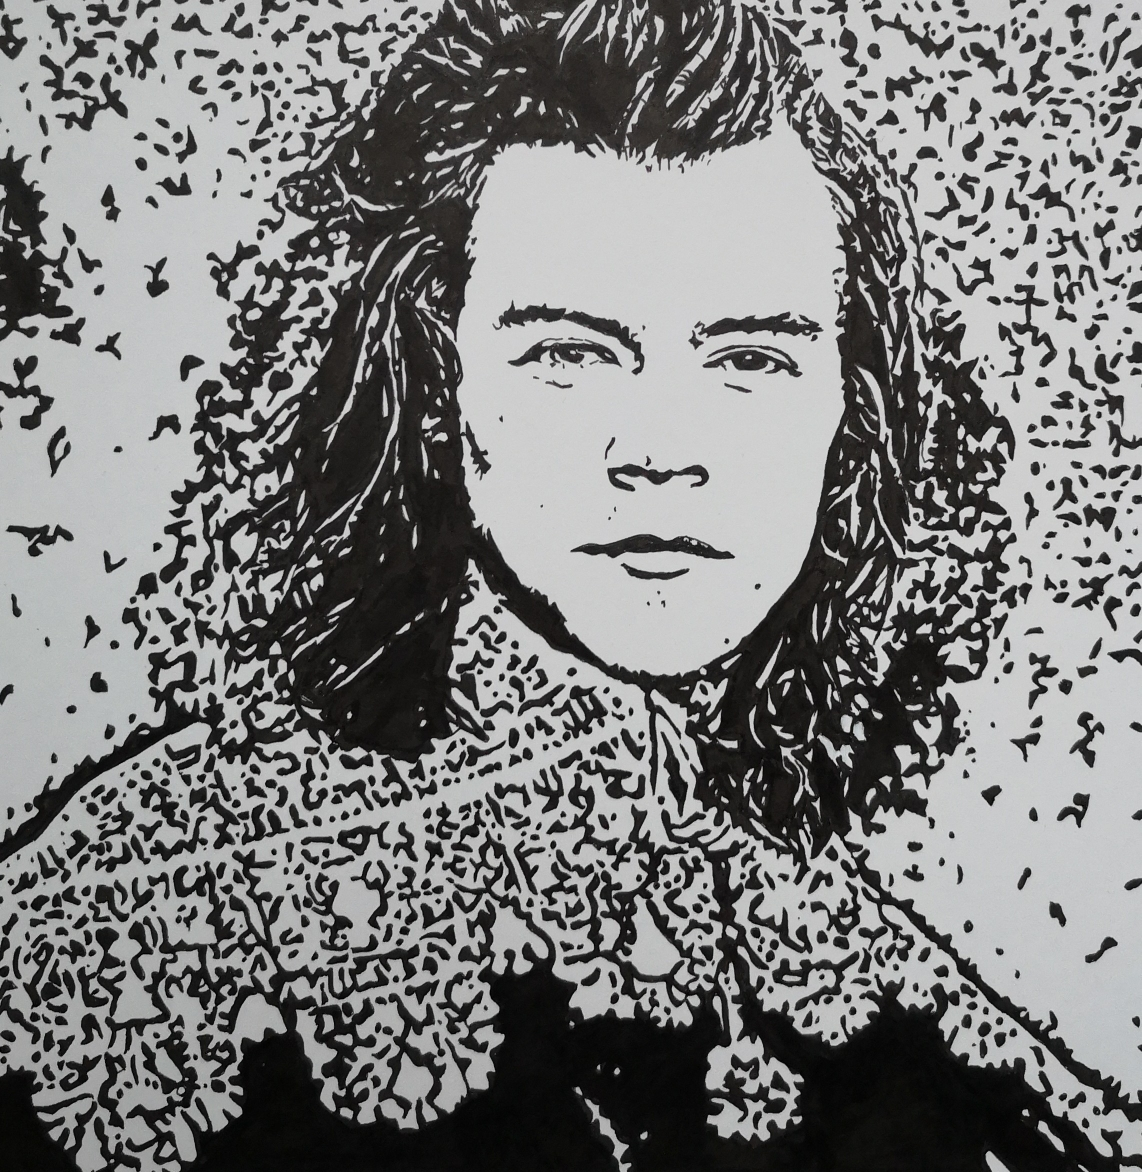 Rembrandt style Harry Stiles